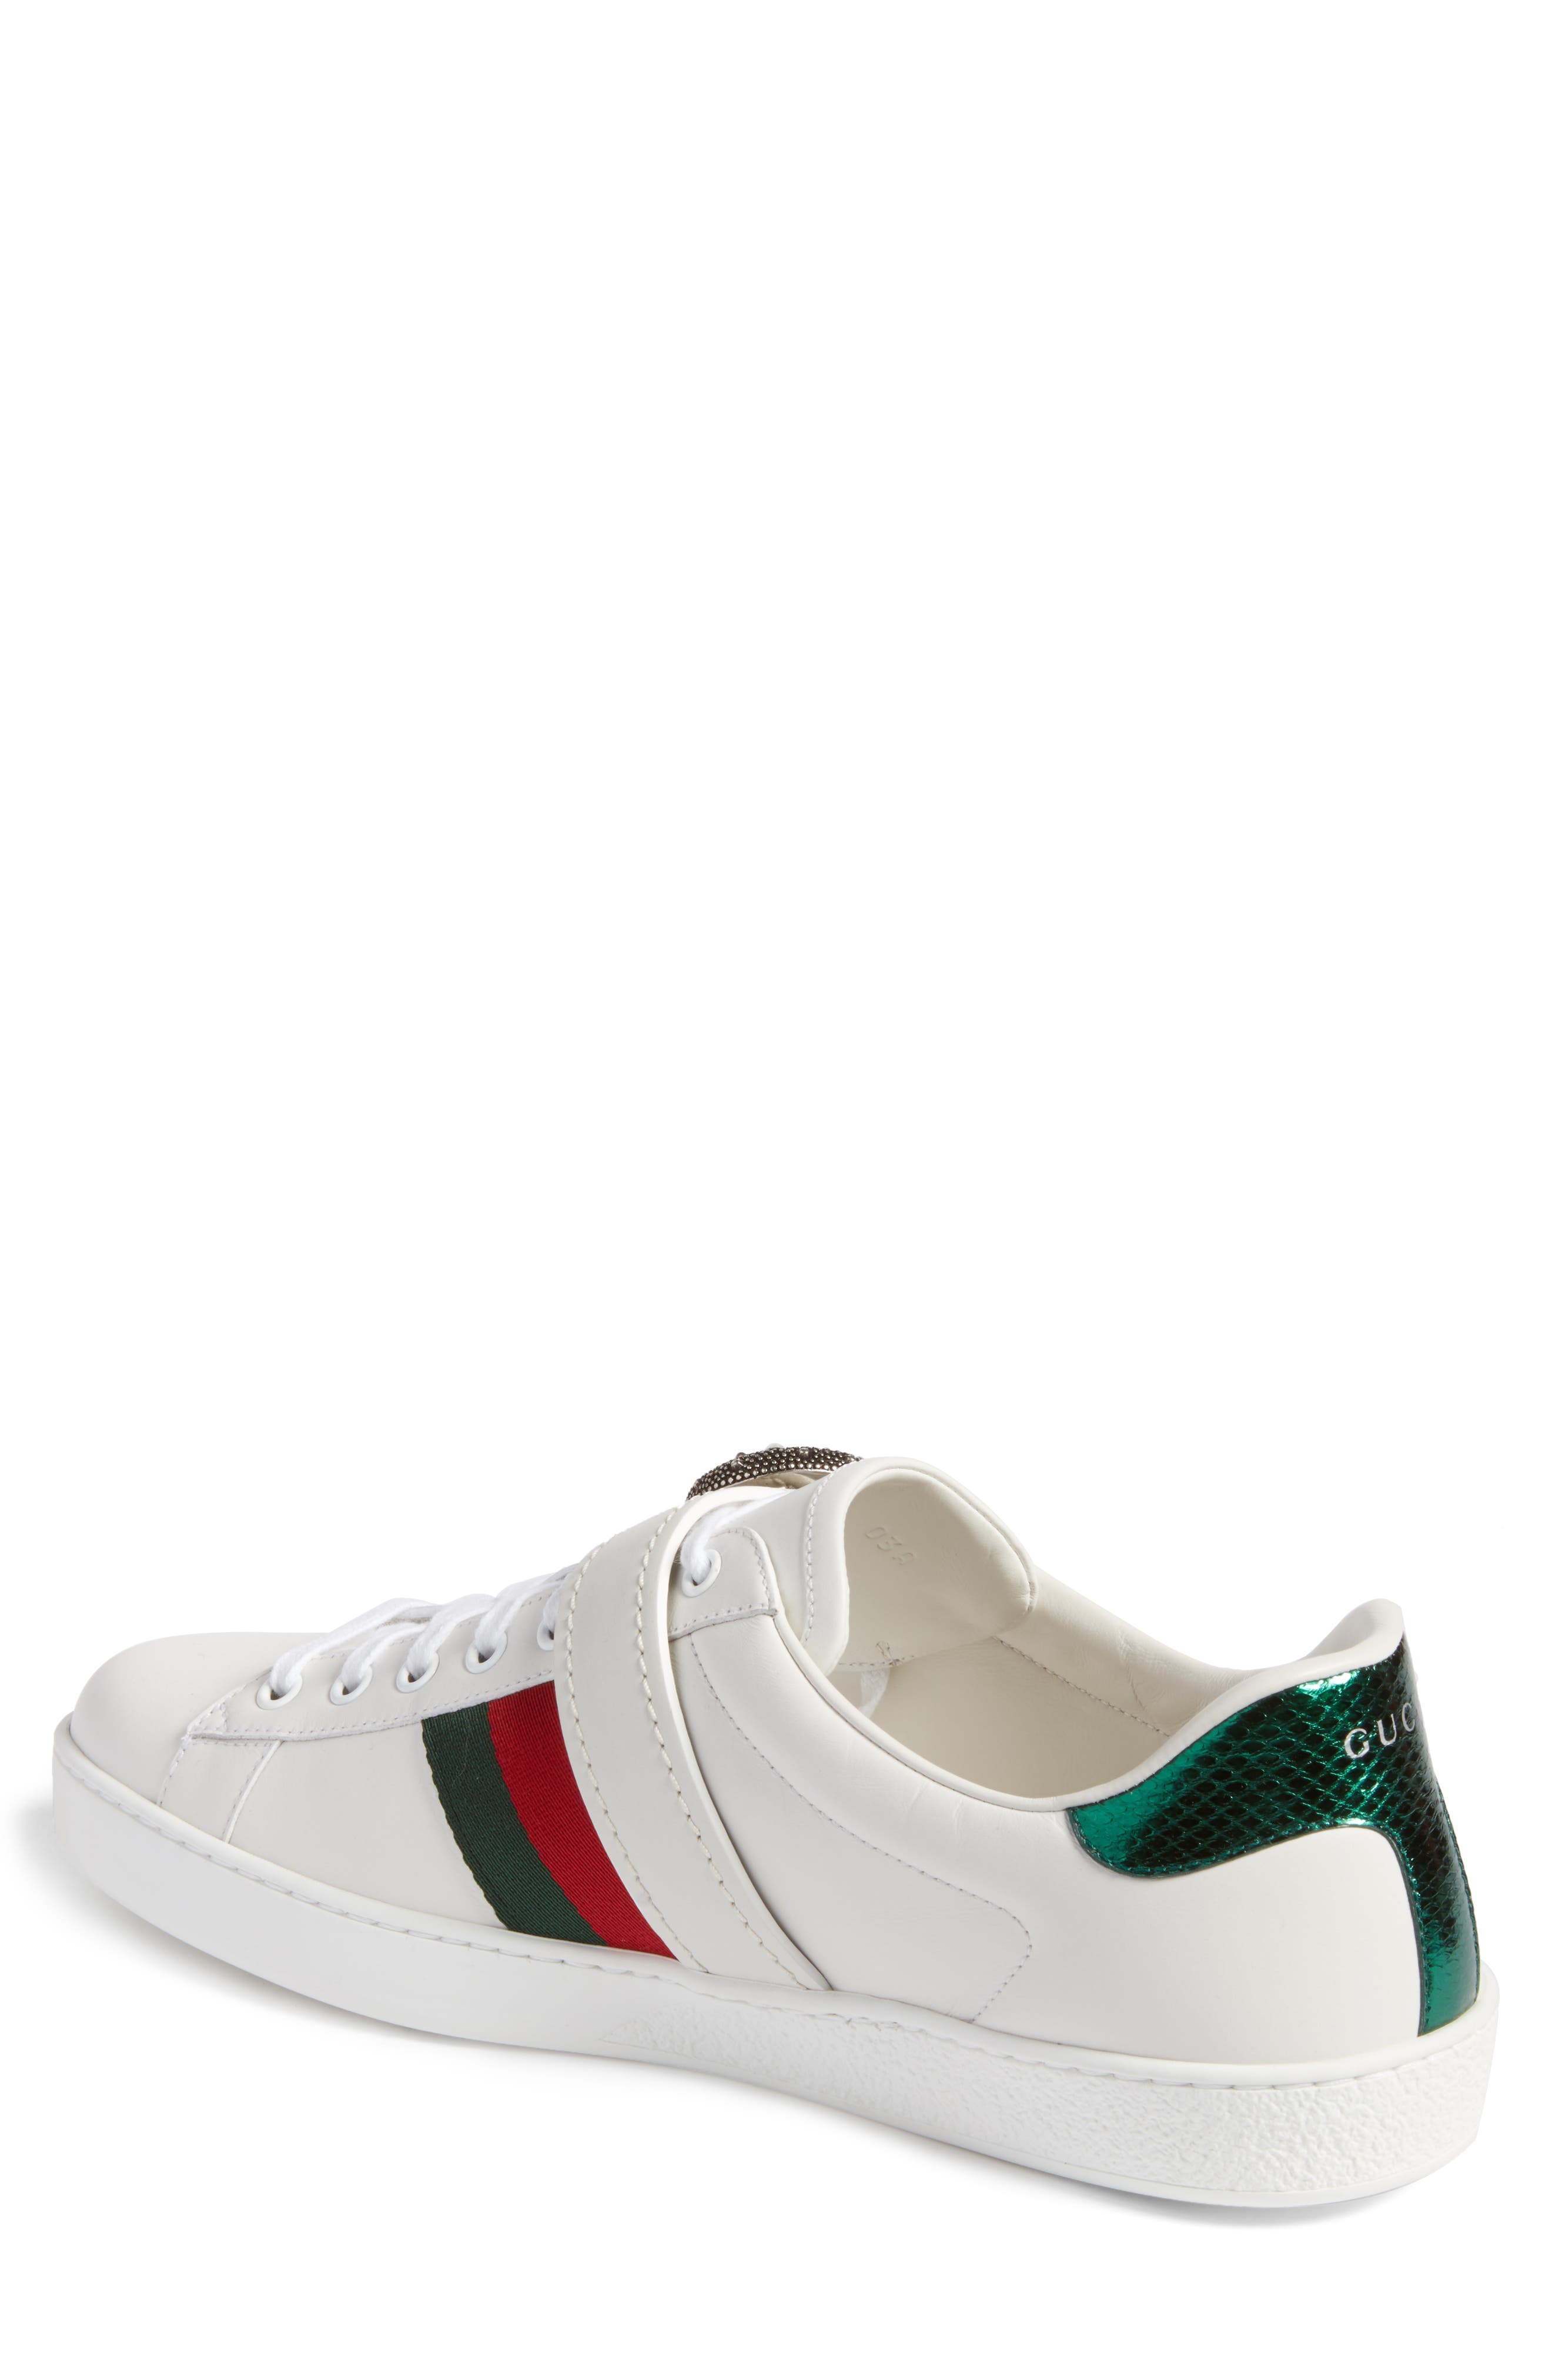 New Ace Dionysus Buckle Low Top Sneaker,                             Alternate thumbnail 2, color,                             138